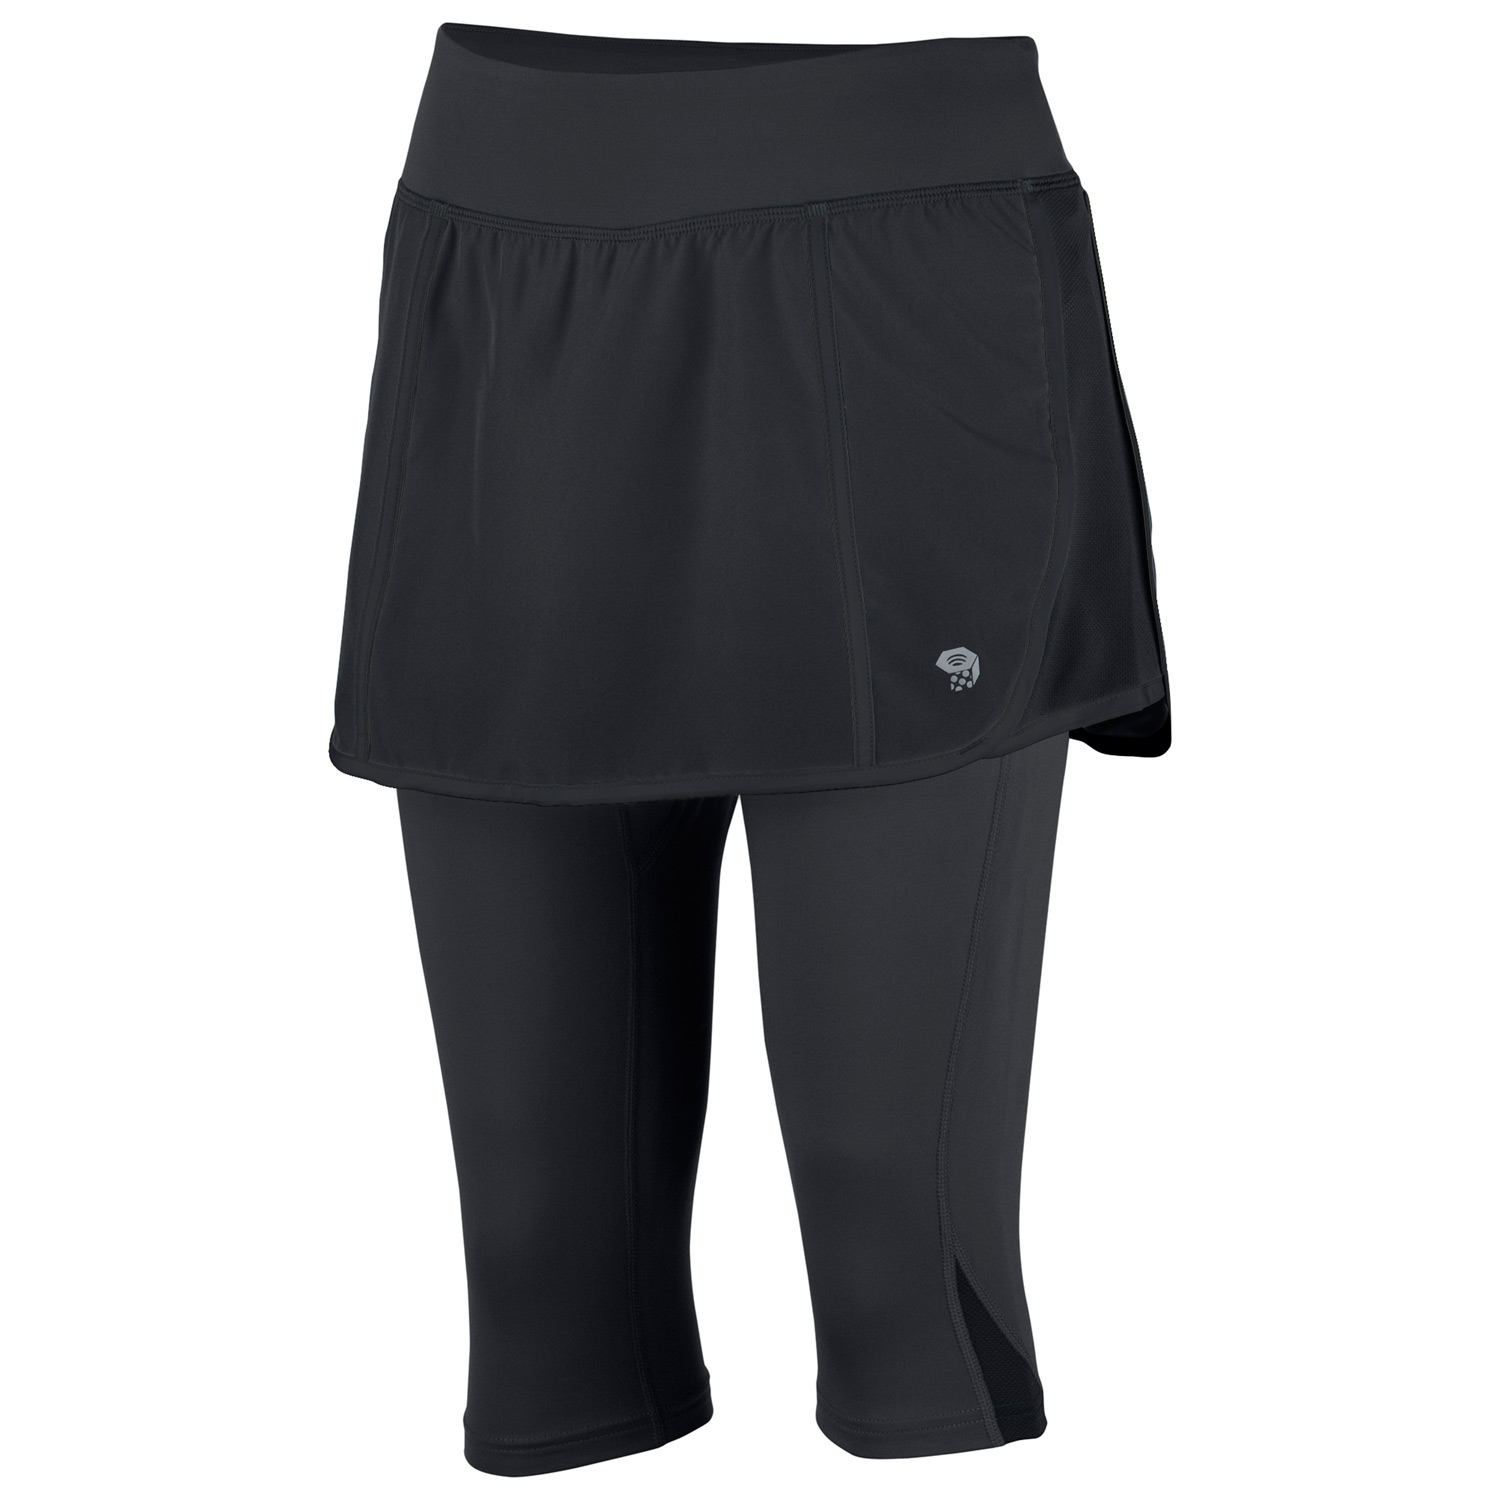 "Fitness Comfortable and cute. Technical fabric provides a great fit, moisture management and movement in a perfect combination of comfort of a tight with the modesty of shorts.Key Features of the Mountain Hardwear Pacer 2-In-1 Skeggins: Wicking, fast drying, stretch fabric Soft drawcord at waist for easy fit adjustments Internal waistband pocket Secure zip pocket on back of waistband DWR finish repels water UPF 25 Our most popular run skort now with built-in tights for cool winter runs. Apparel Fit Body Weight6.5 oz. / 185 g. Inseam Length16"" / 41 cm BodyTilewood Plain Weave - $48.95"